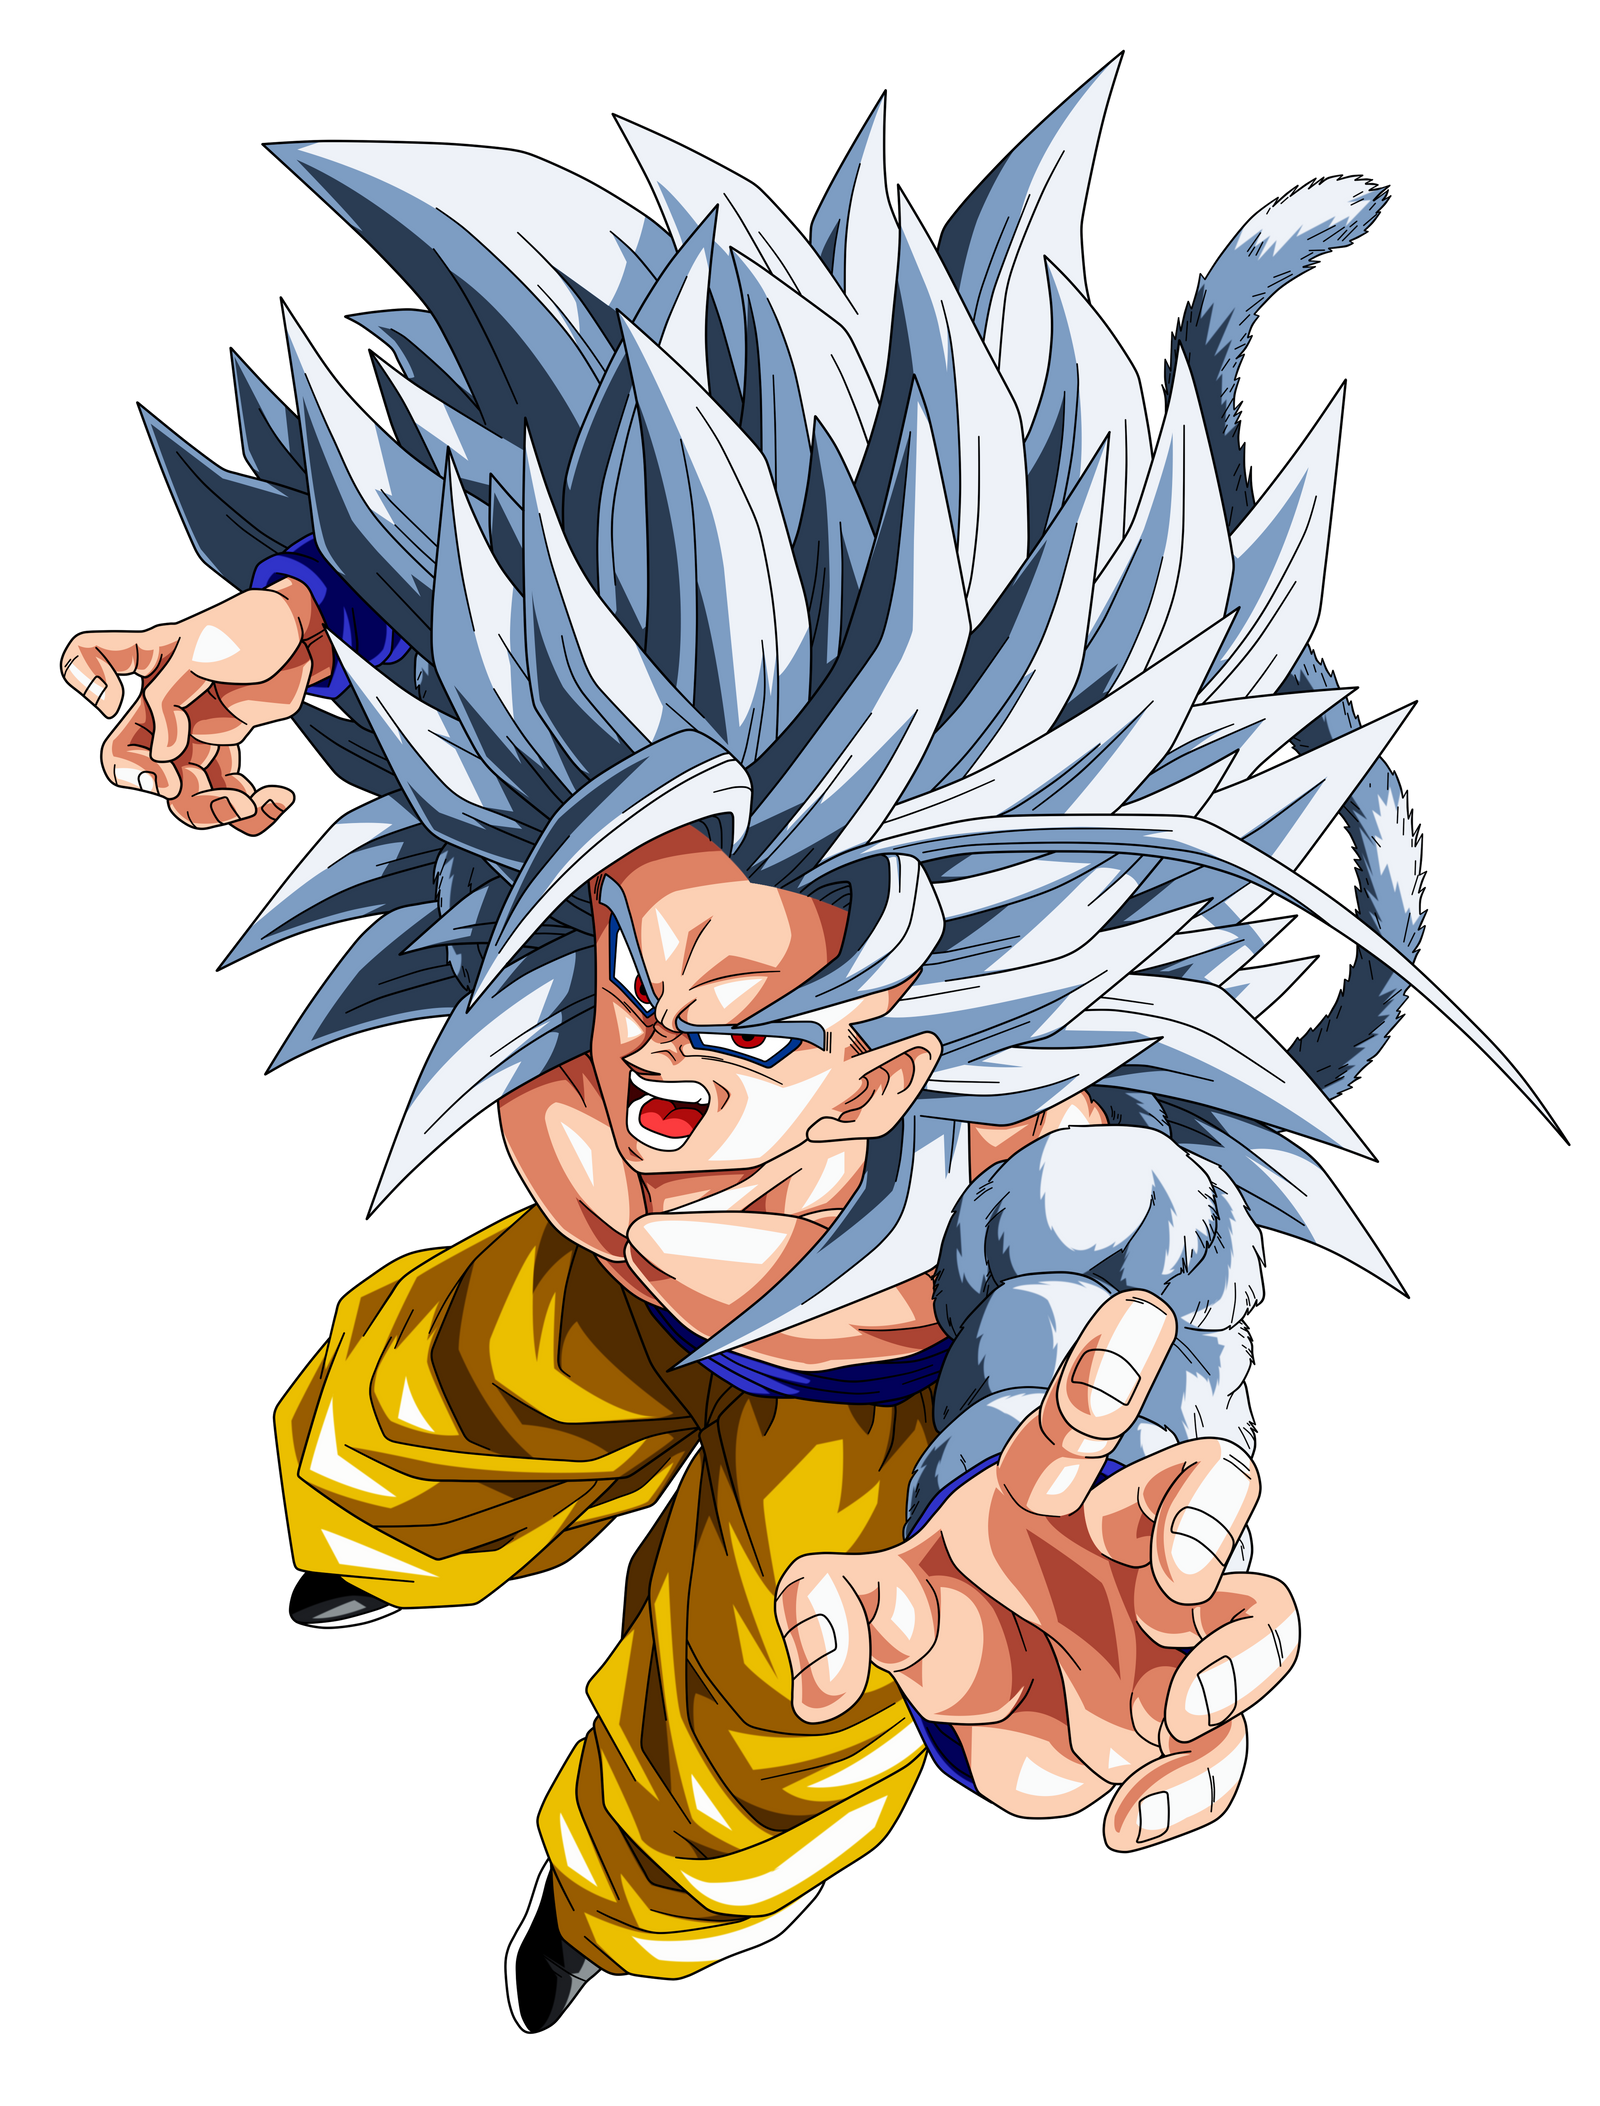 Goku super saiyan 5 by el maky z on deviantart - Goku 5 super saiyan ...